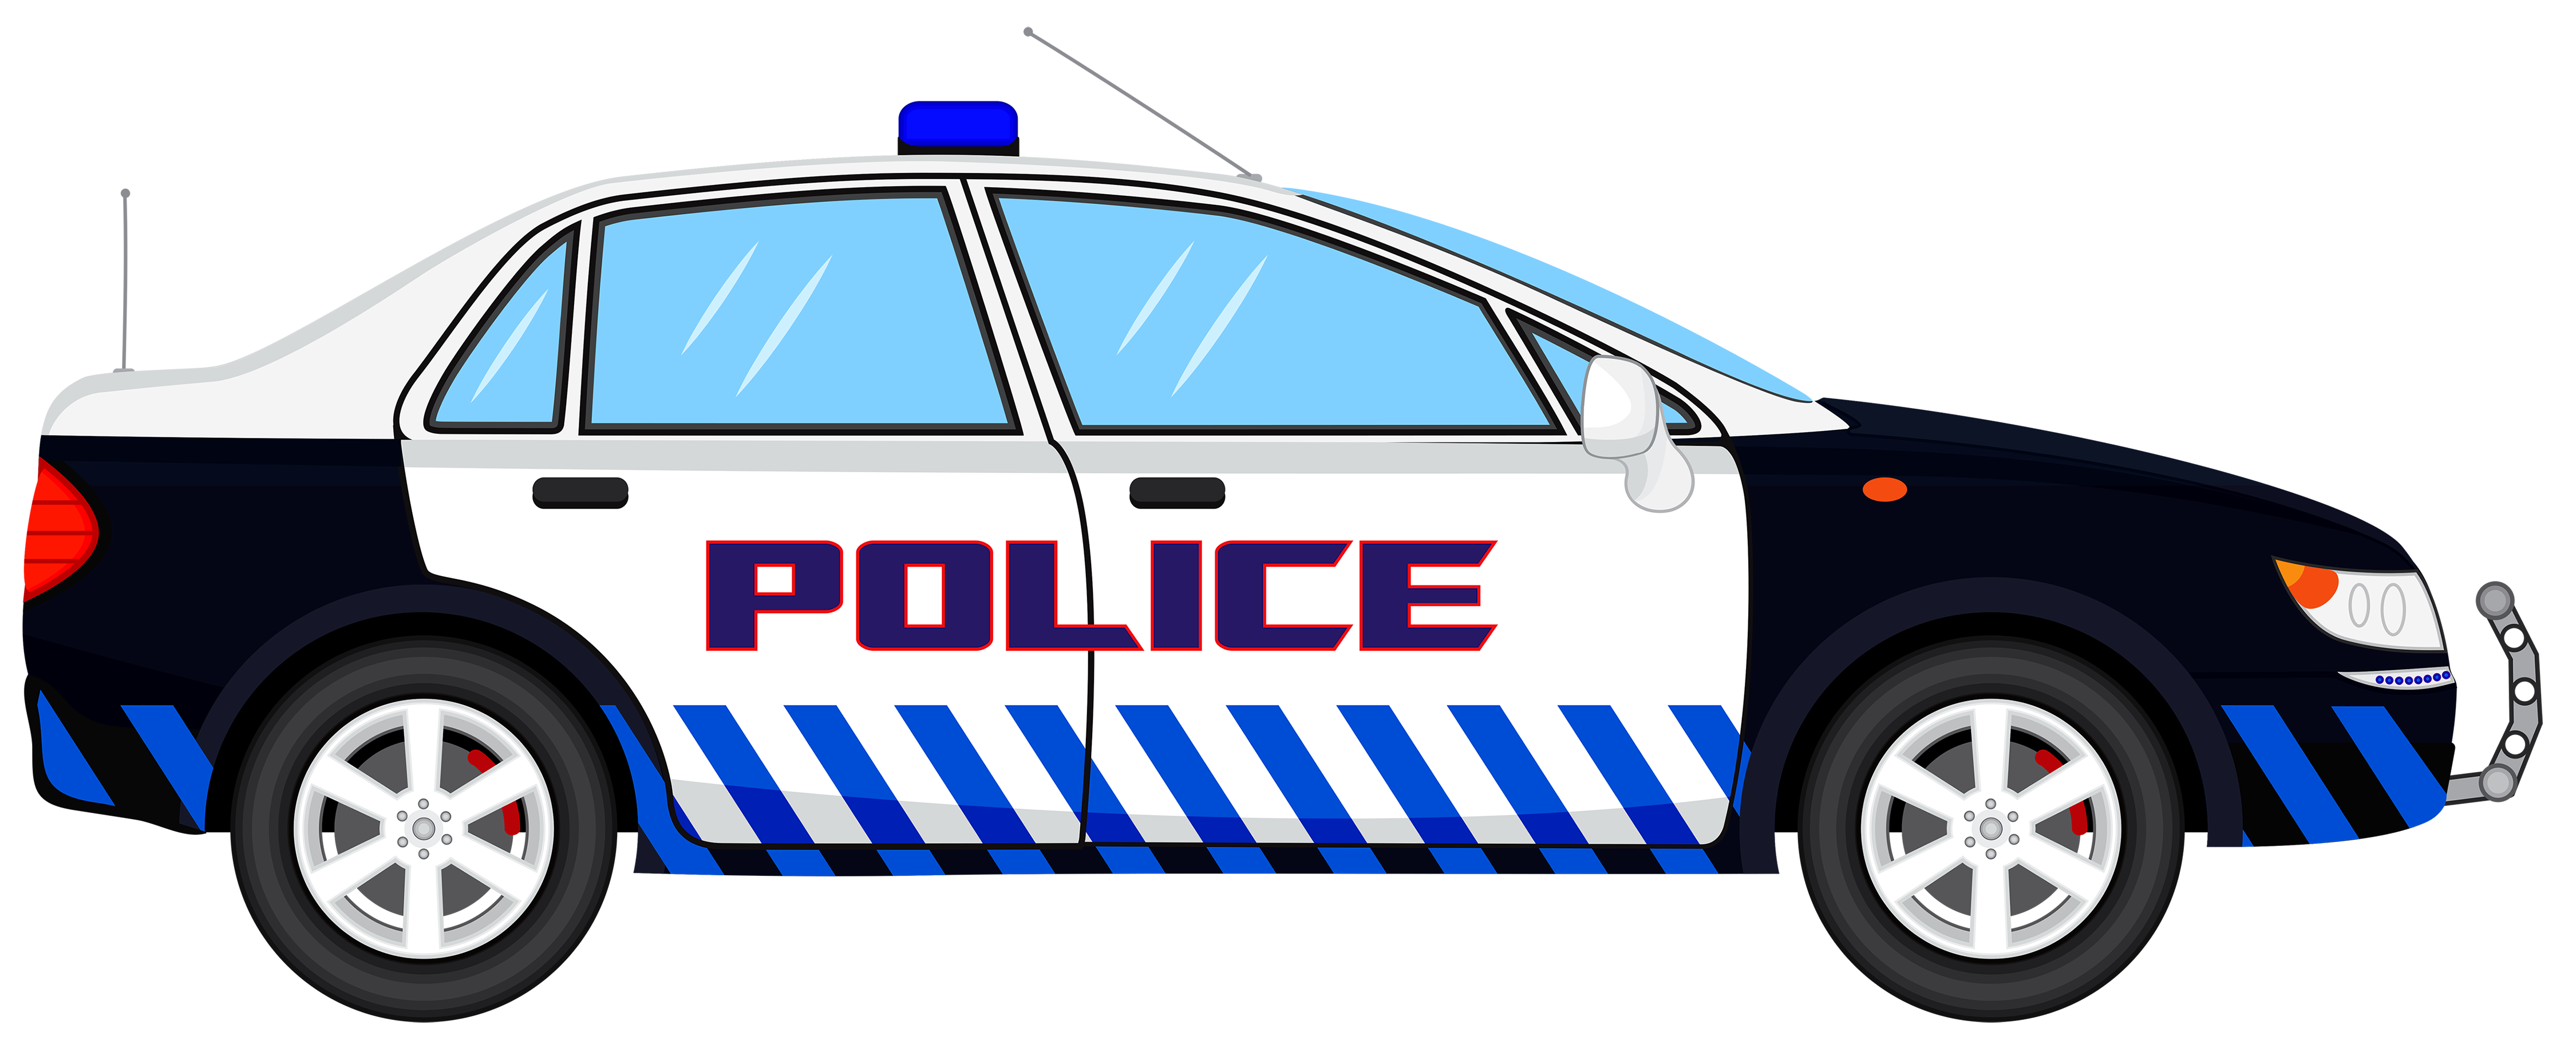 Police station with police car clipart image royalty free download Police Car Clip Art & Police Car Clipart Images #116 - OnClipart image royalty free download